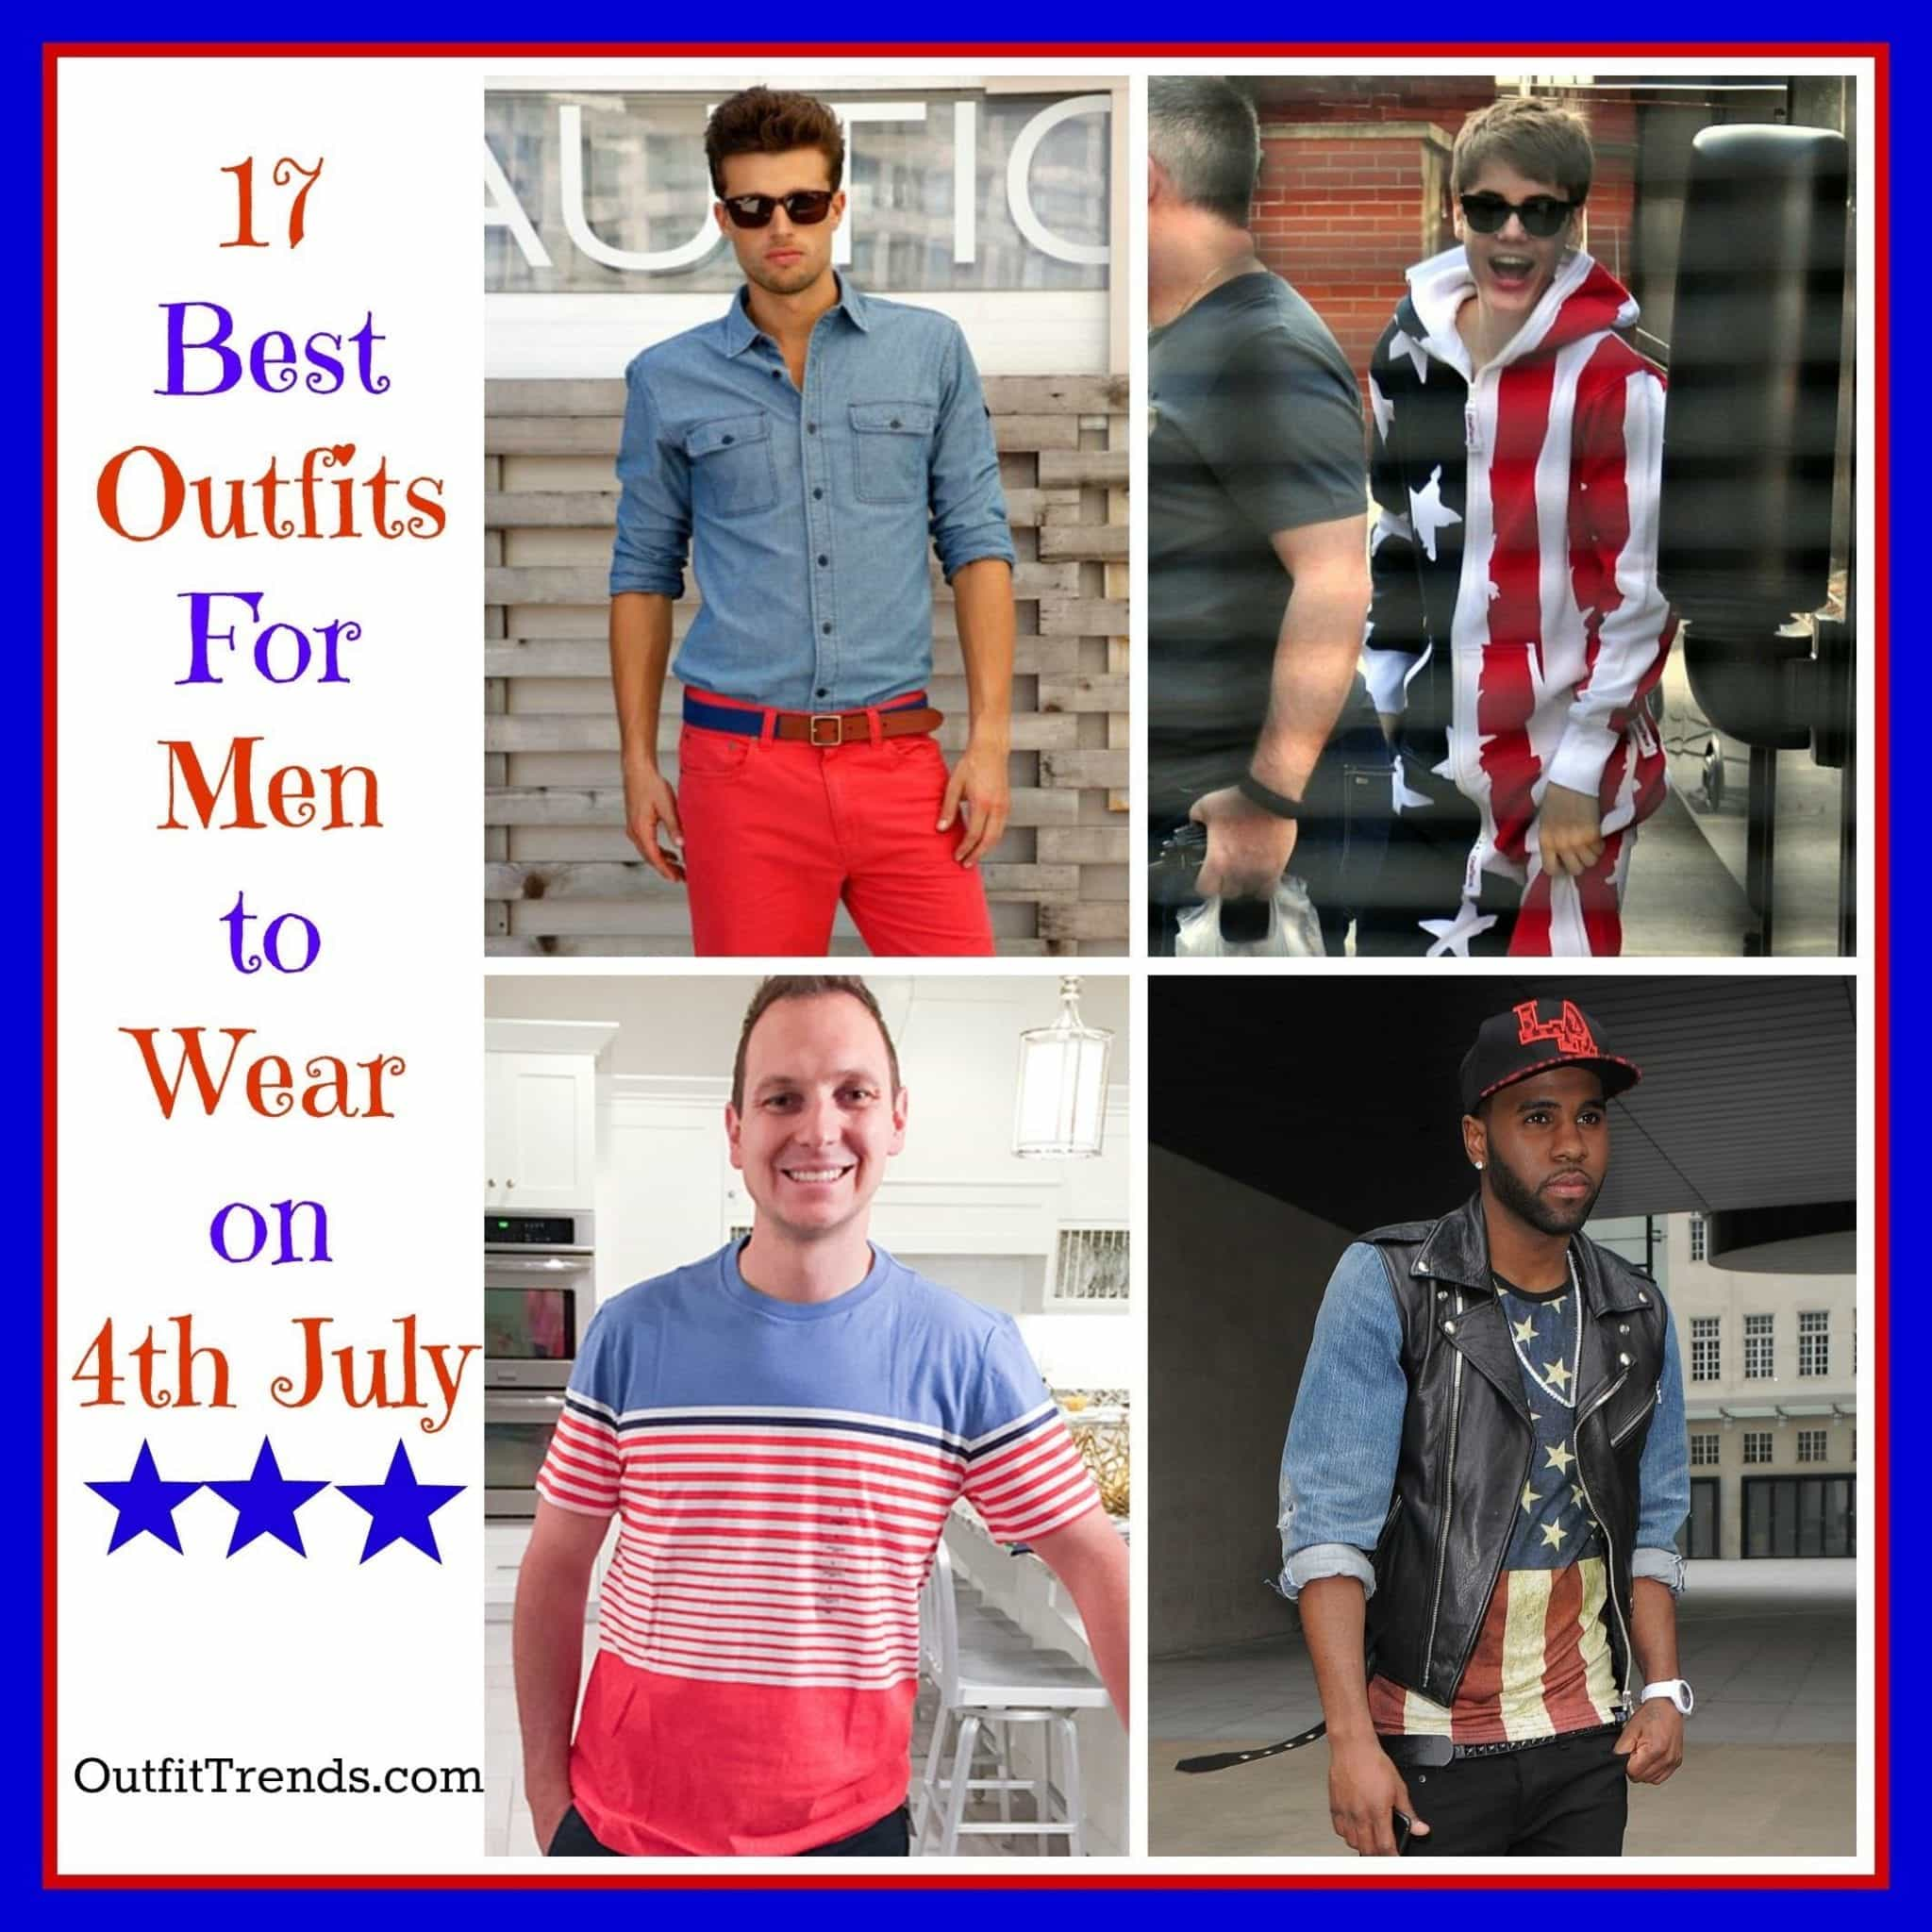 PicMonkey-Collage-9 4th of July Outfits for Men-17 Ideas What to Wear on 4th July 2018